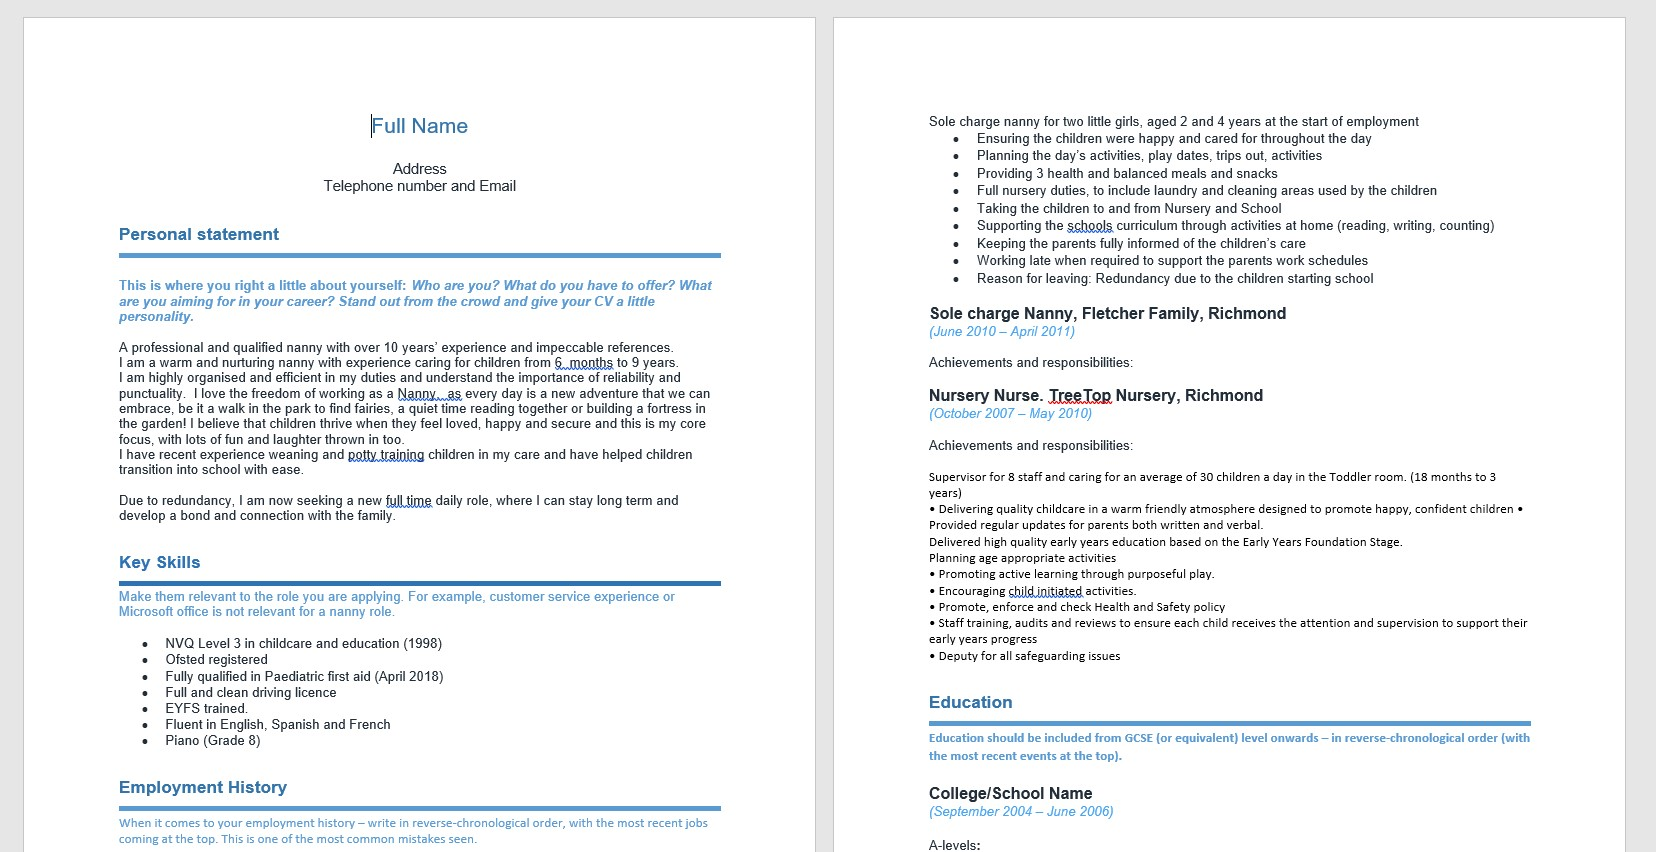 cv for nannies made easy our handy nanny template absolute childcare resume sample Resume Nanny Resume Sample Templates